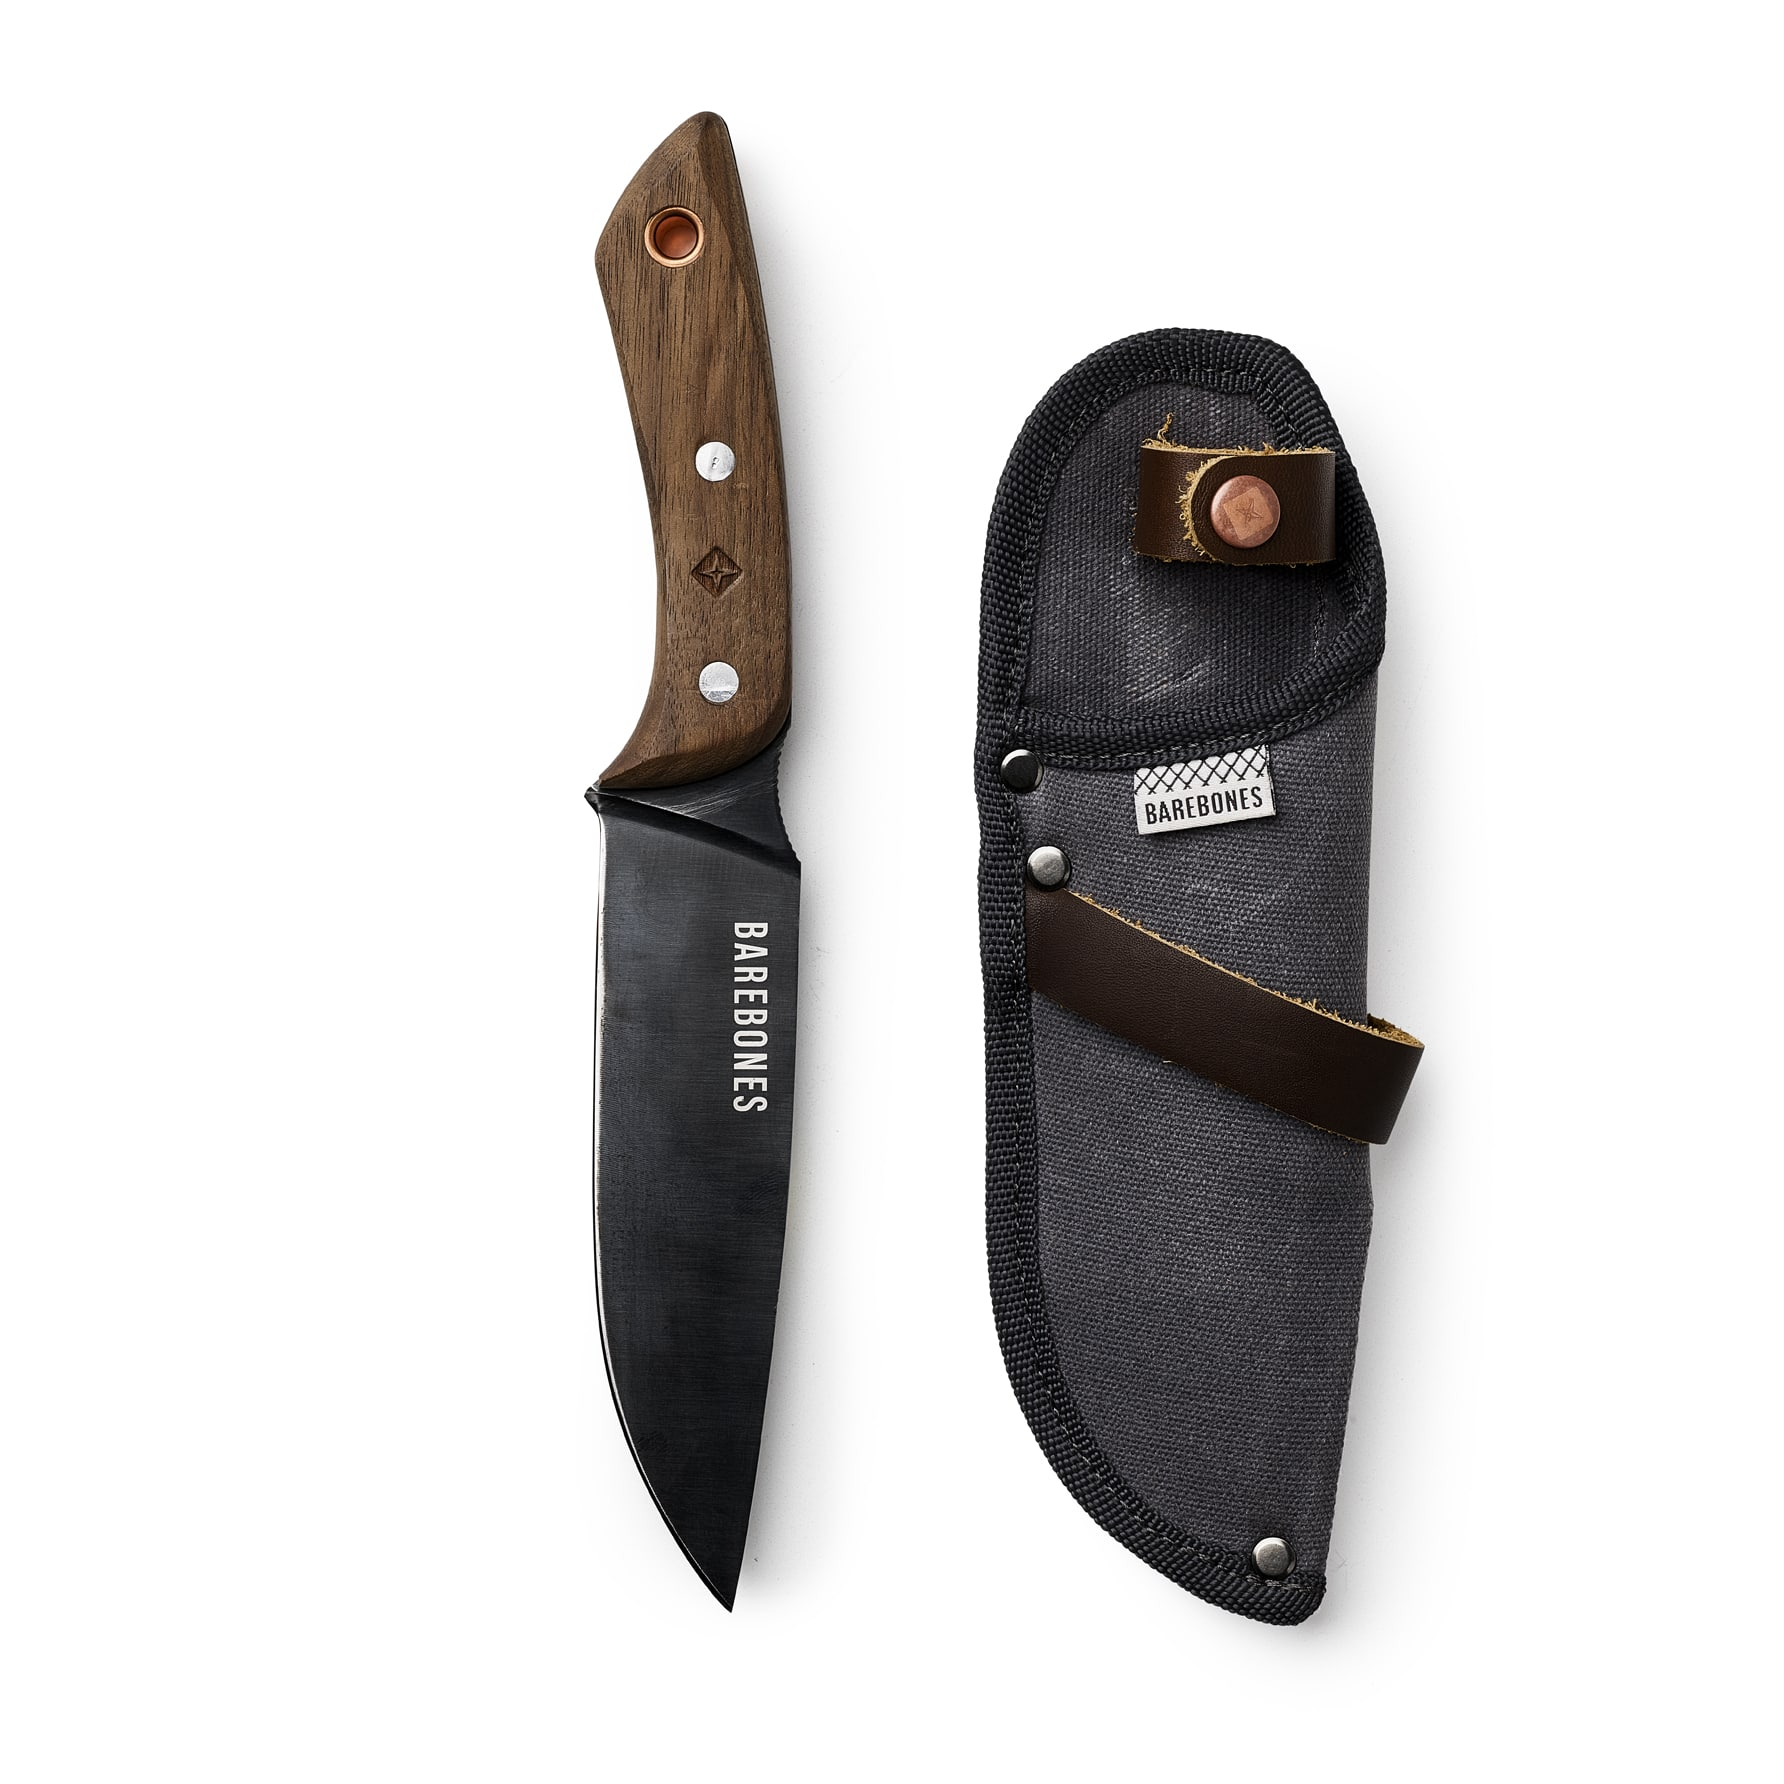 Field Knife next to sheath